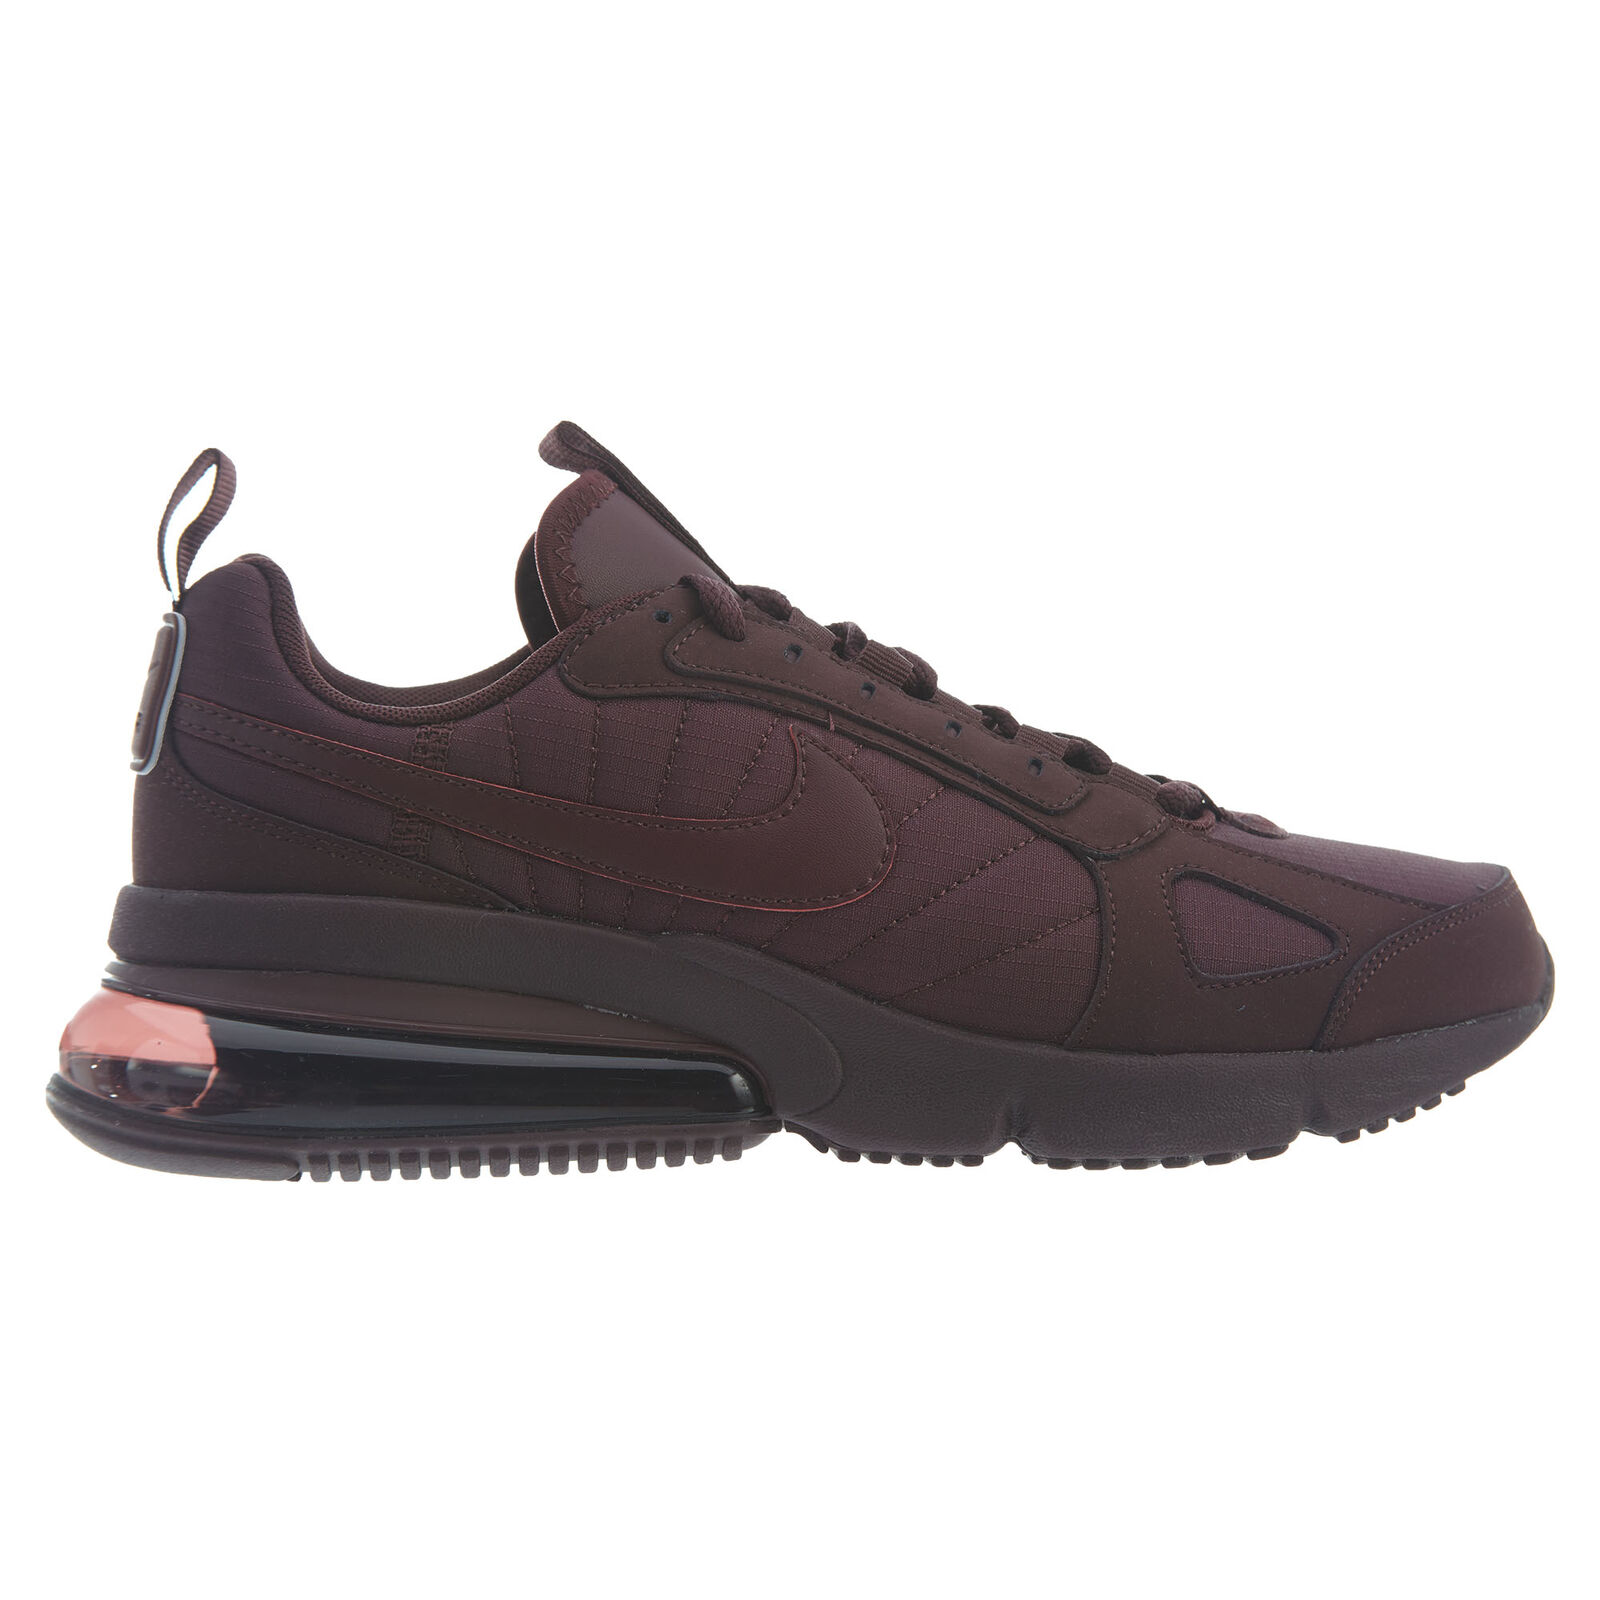 Nike Air Max 270 Futura Mens AO1569-600 Burgundy Crush Running shoes Size 8.5